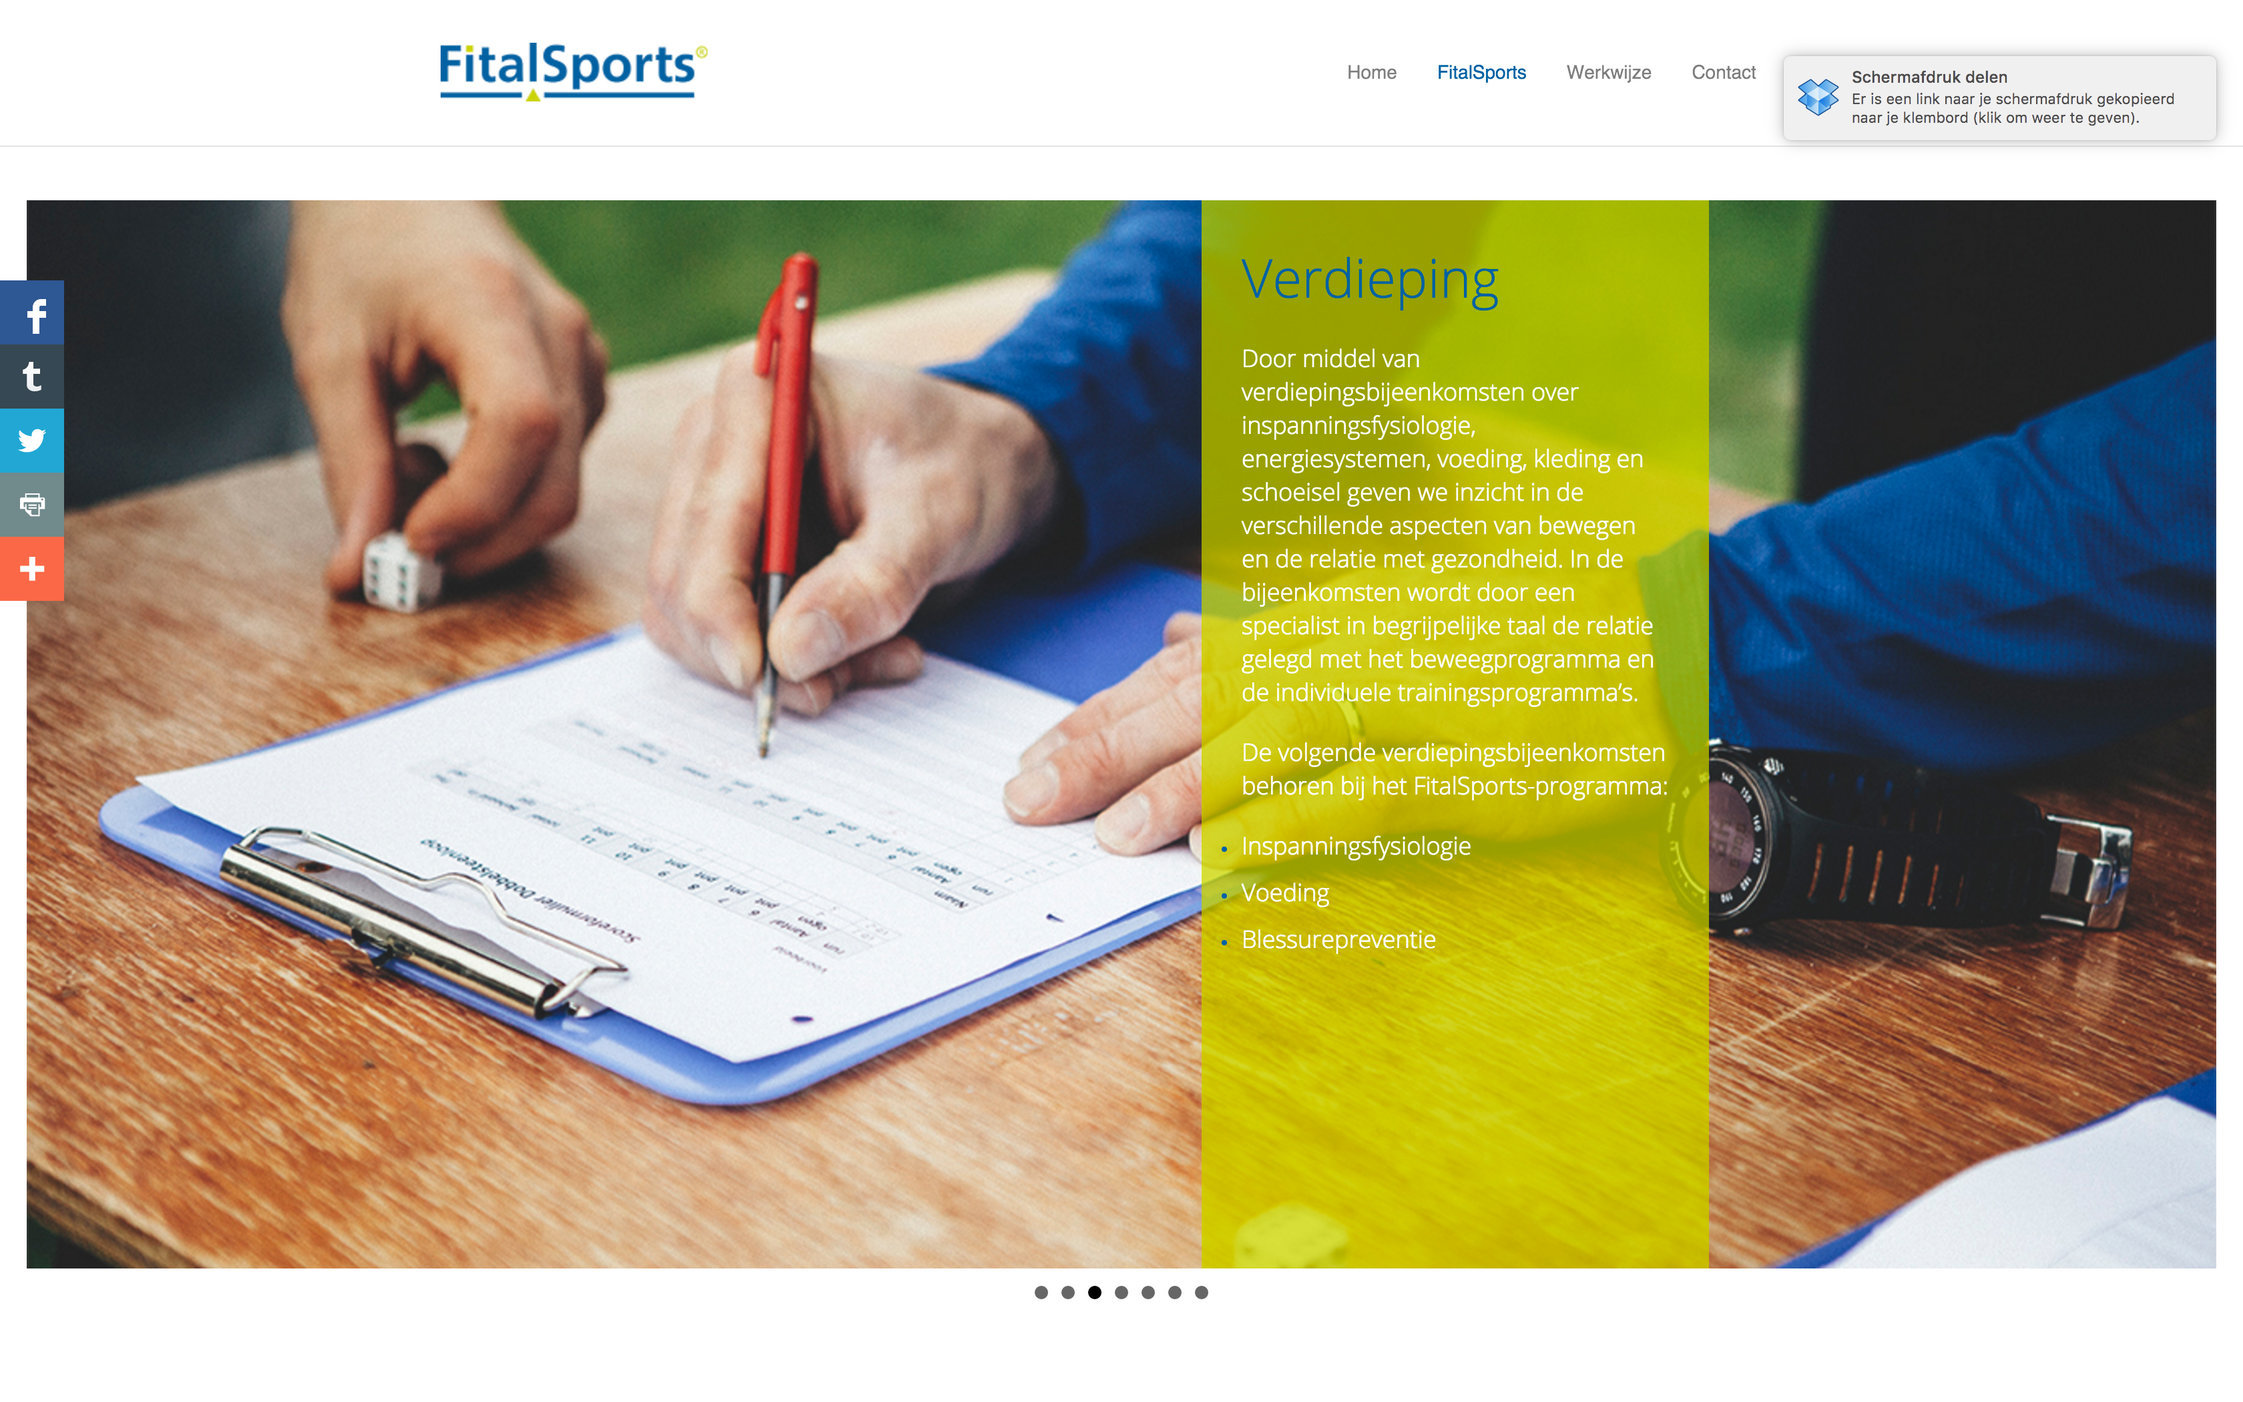 New website for FitalSports